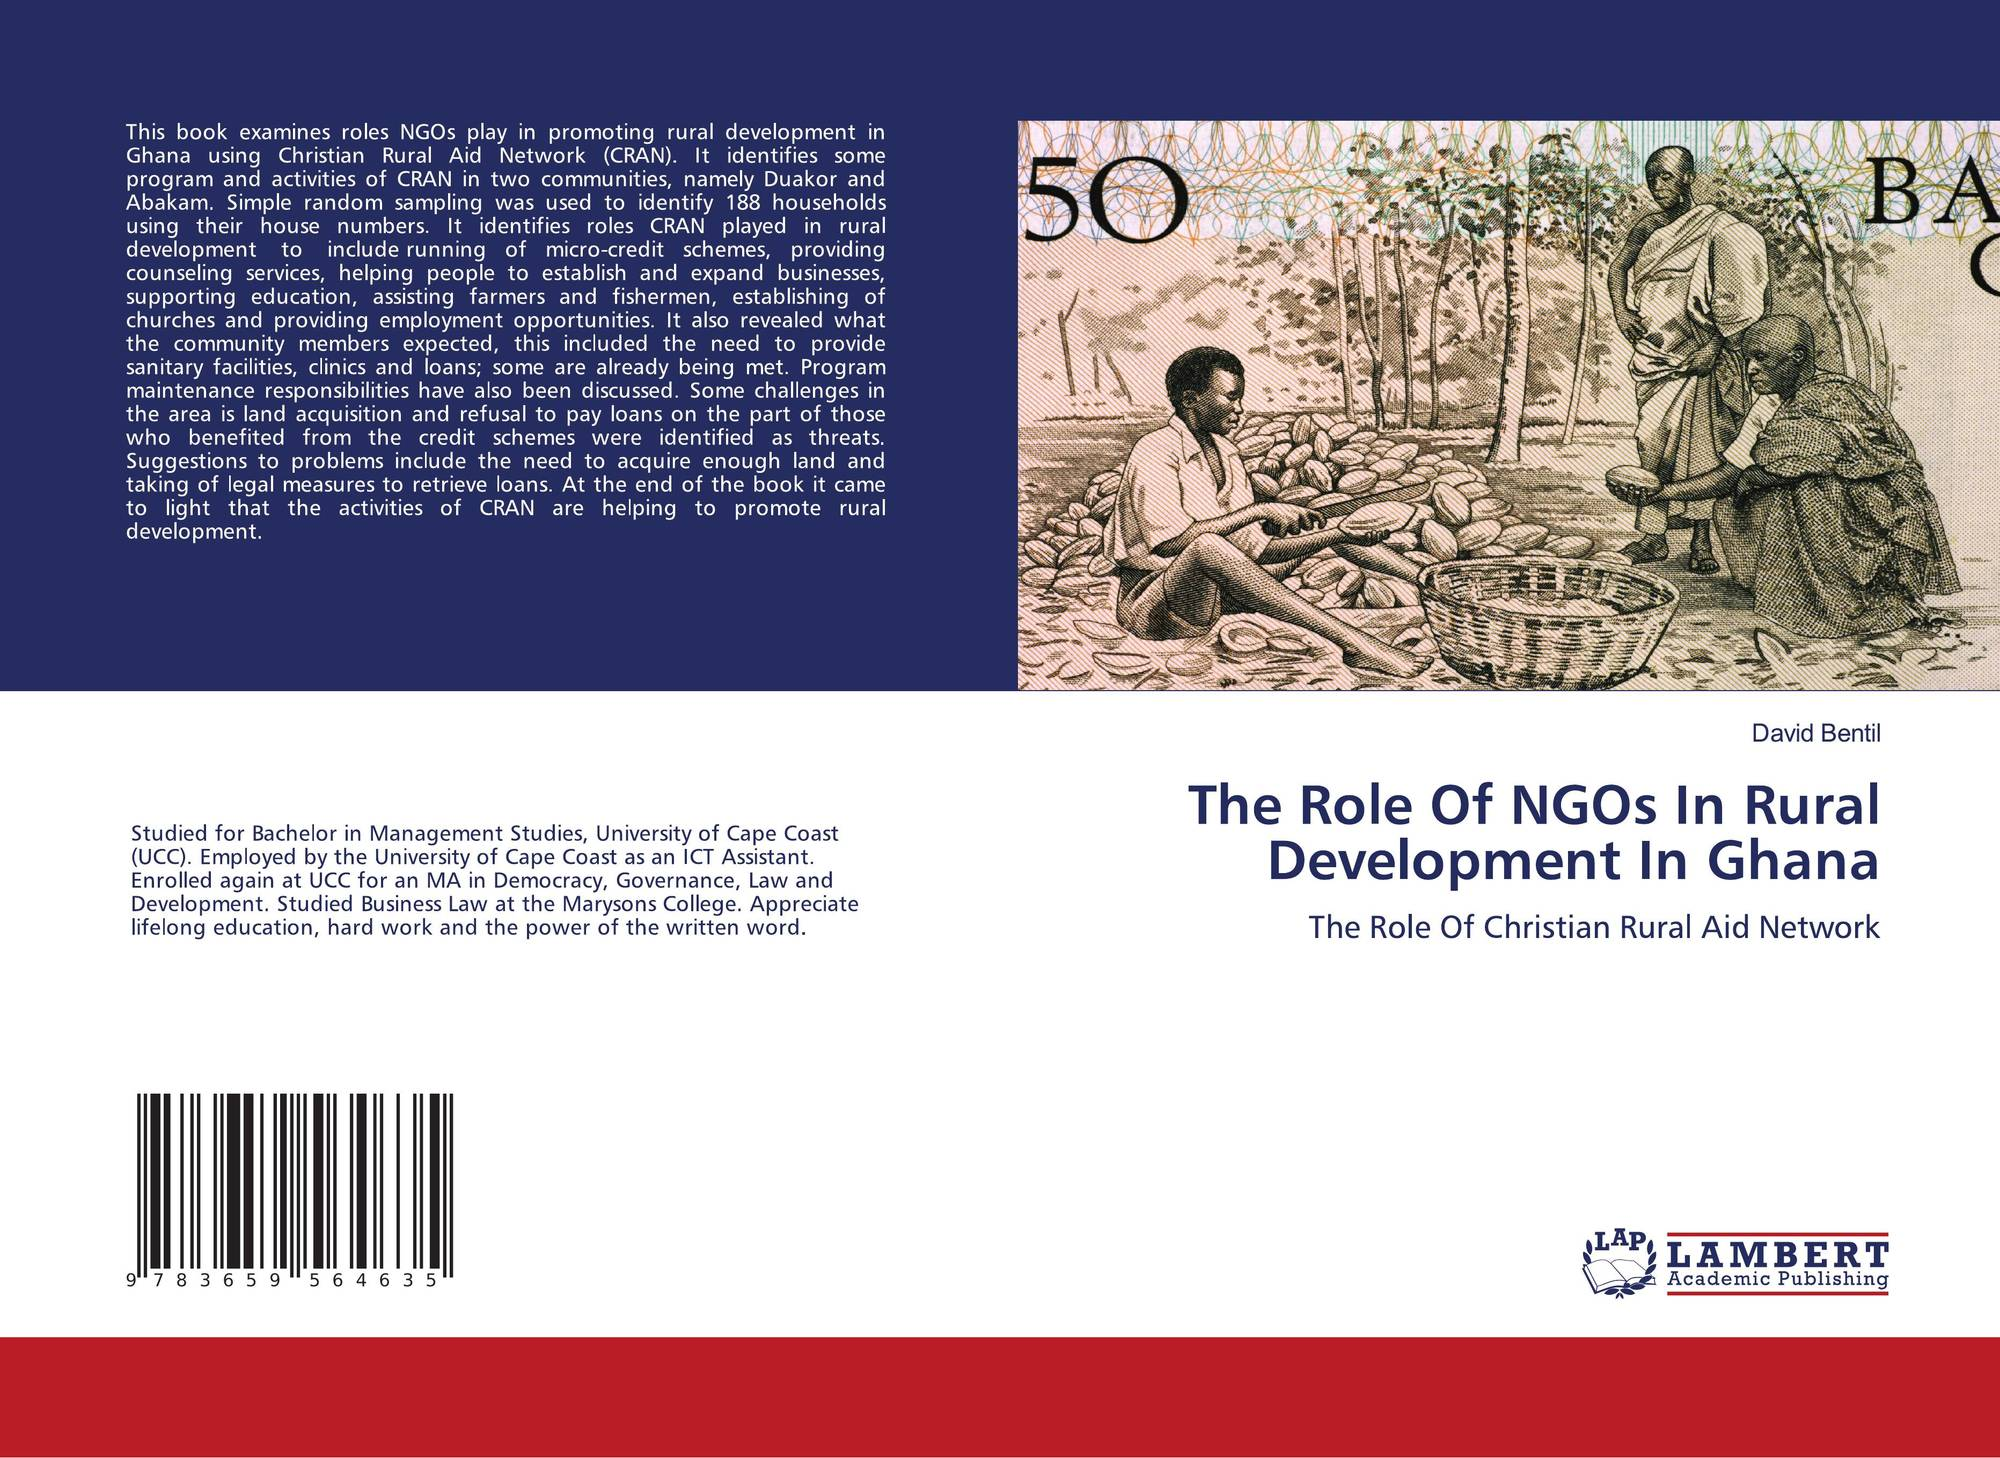 role of ngos in rural development thesis This book attempts to examine the role of ngos in rural development.